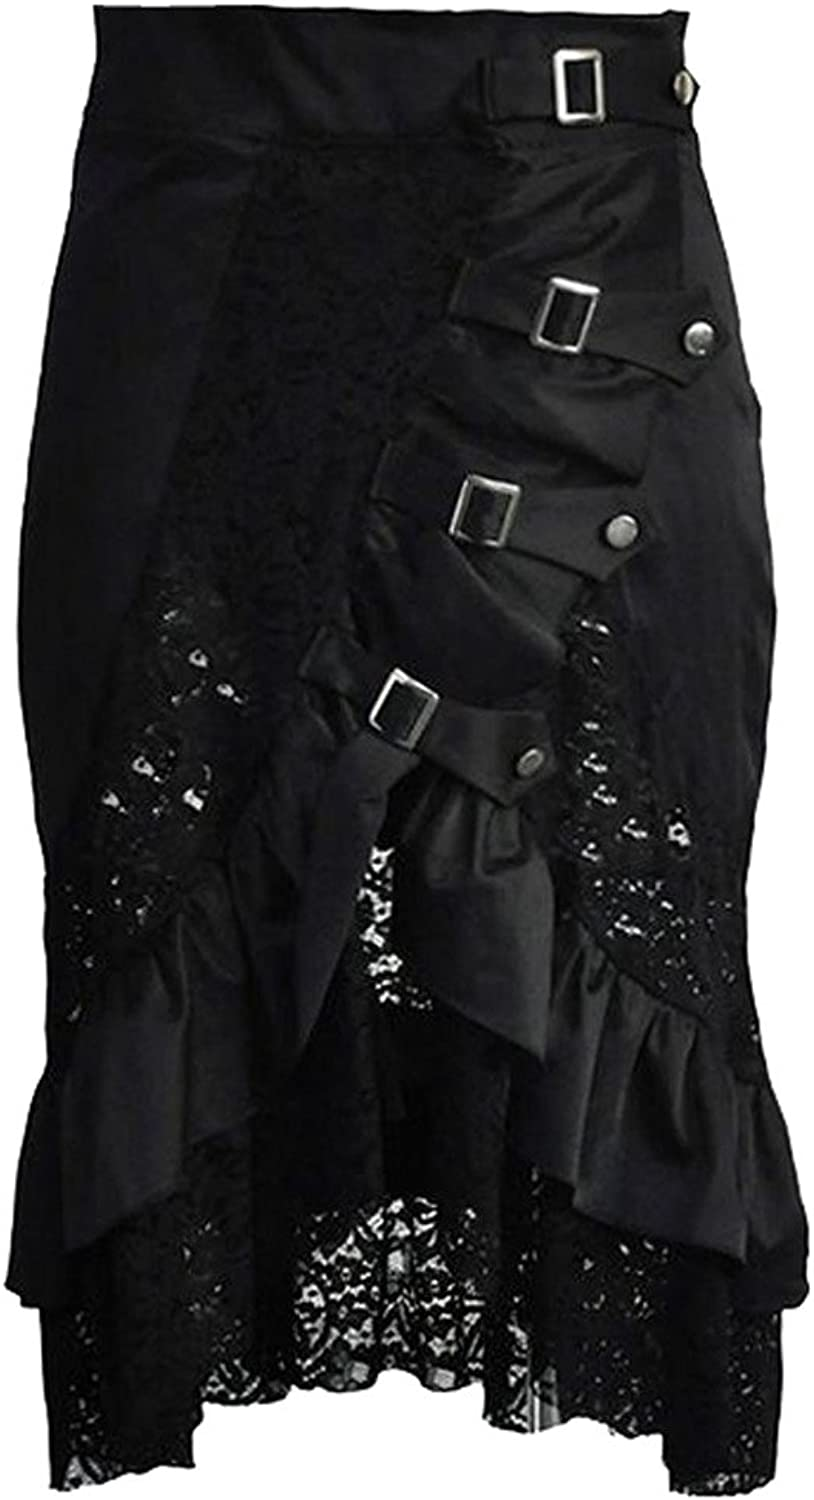 Alivila.Y Fashion Women's Vintage Steampunk Victorian Goth Lace Party Skirt